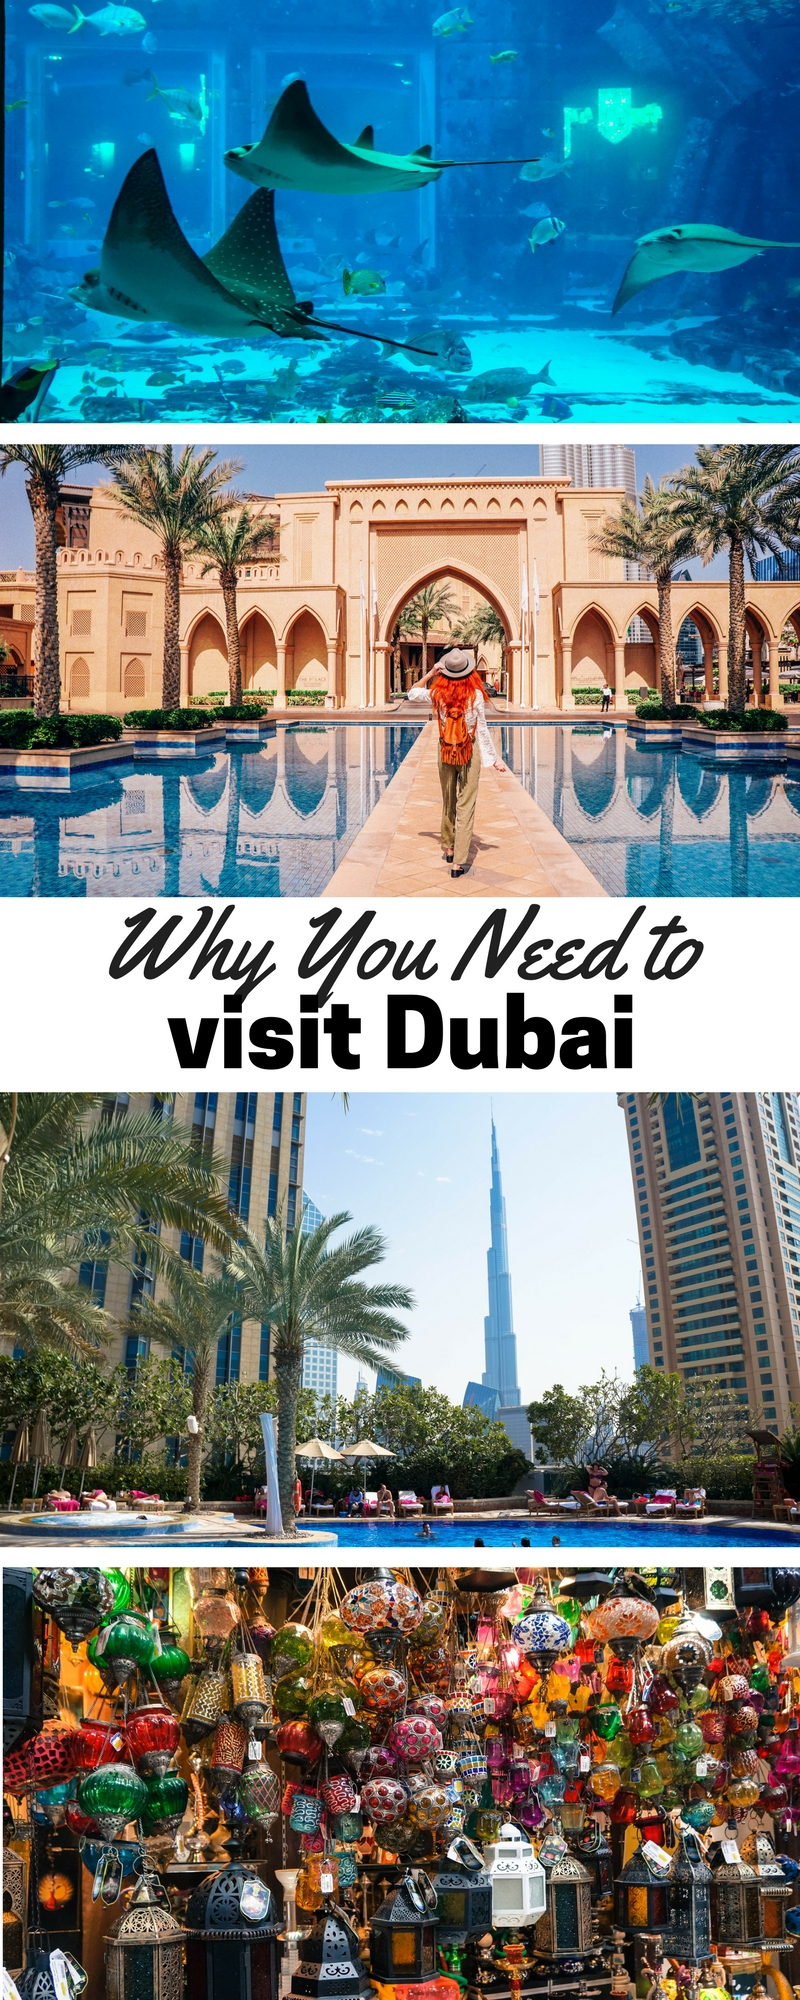 Why You need to visit Dubai